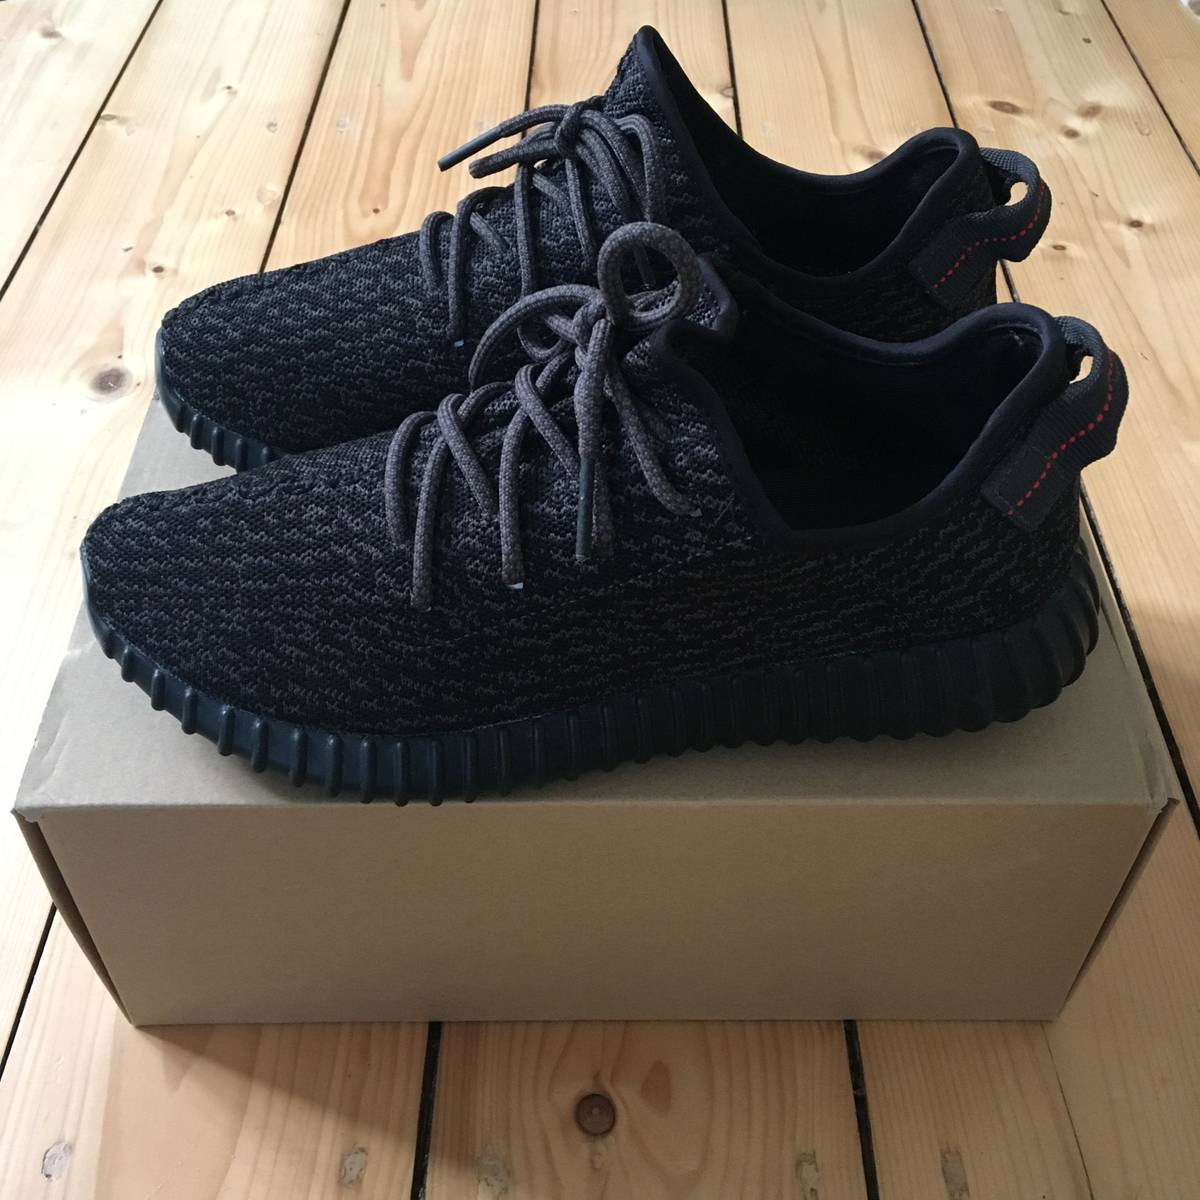 Adidas Yeezy 350 Boost V2 Turtle Dove First In Sneakers